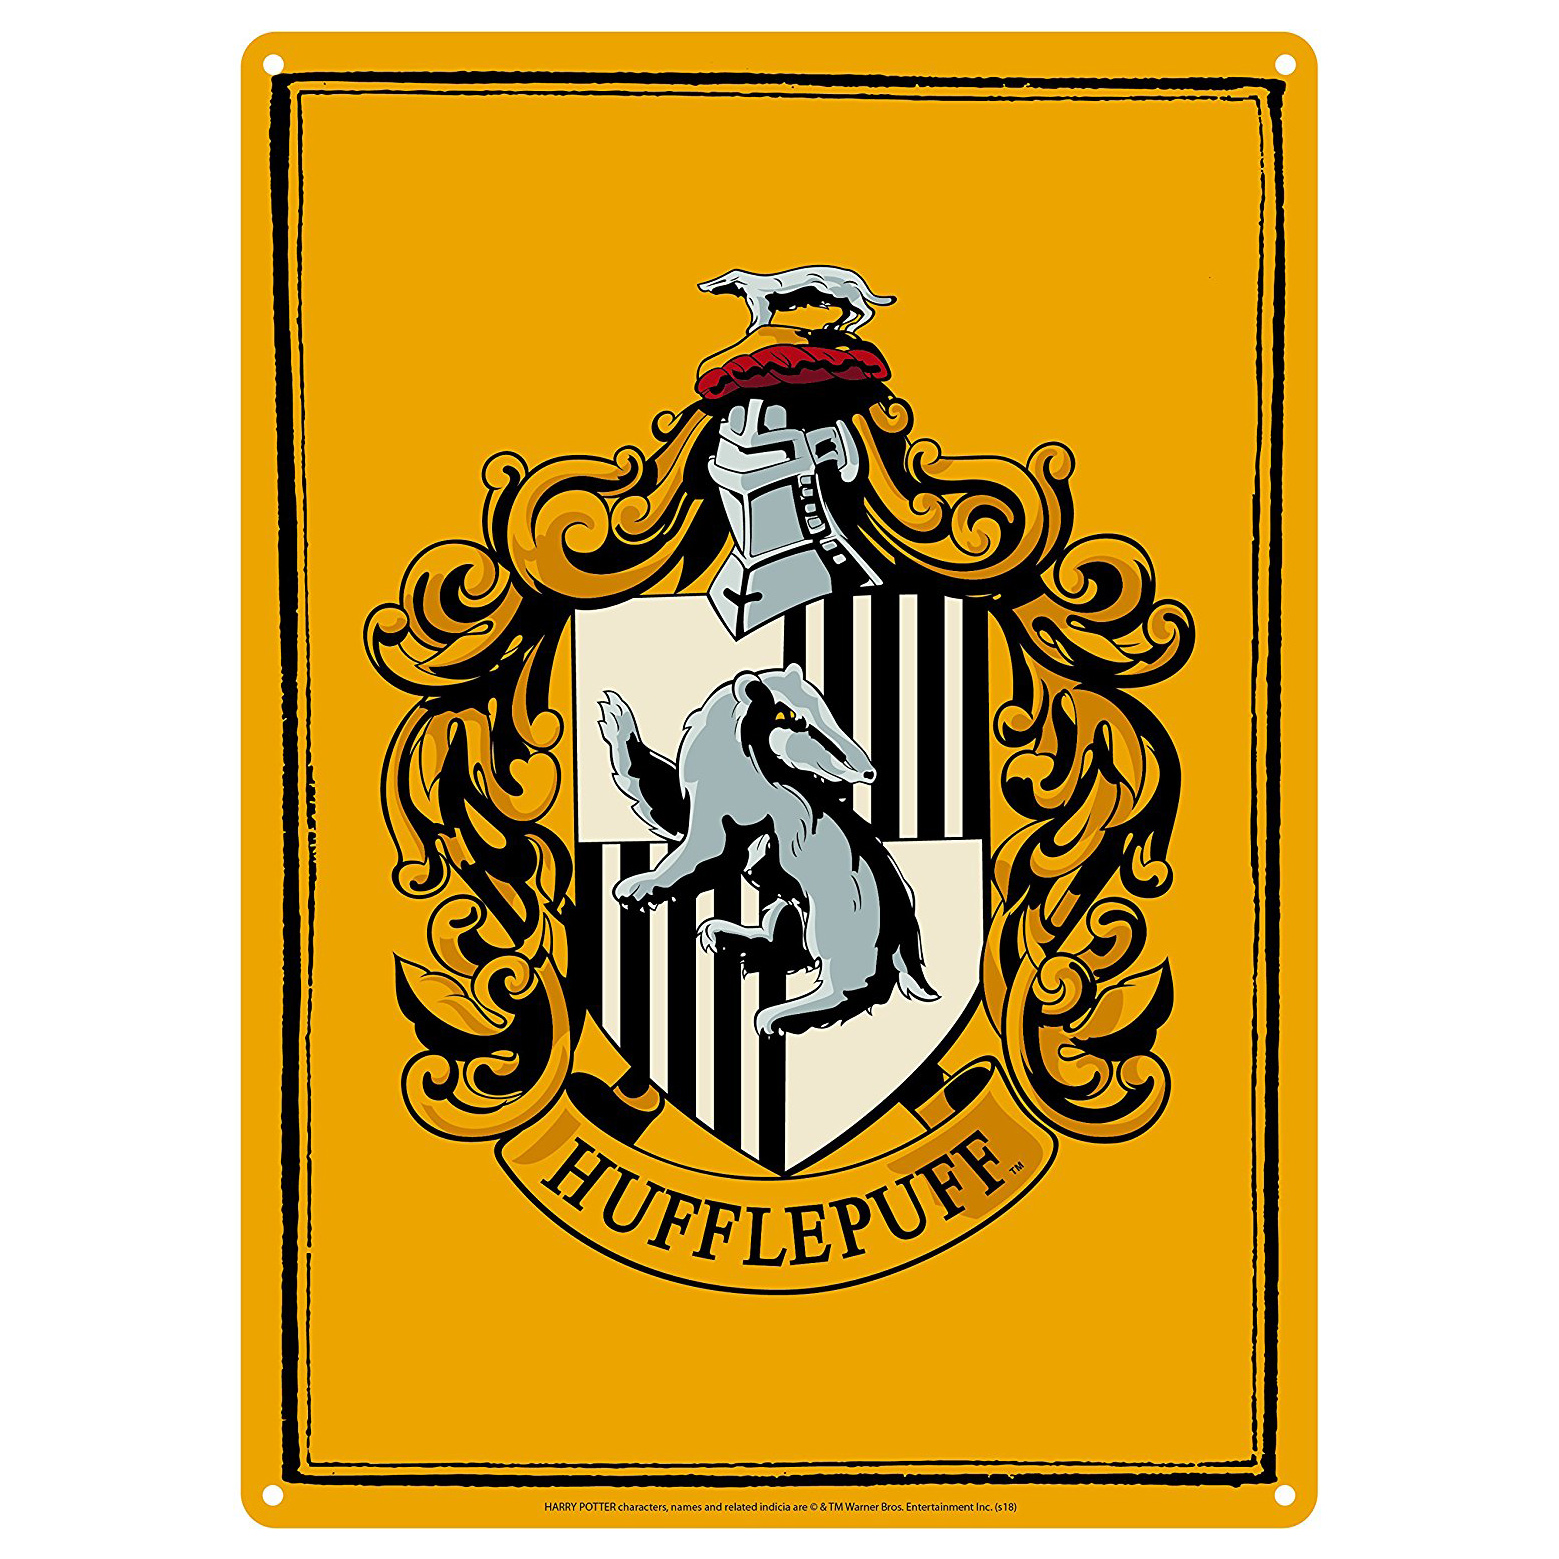 Harry Potter Hufflepuff House Crest A5 Steel Sign